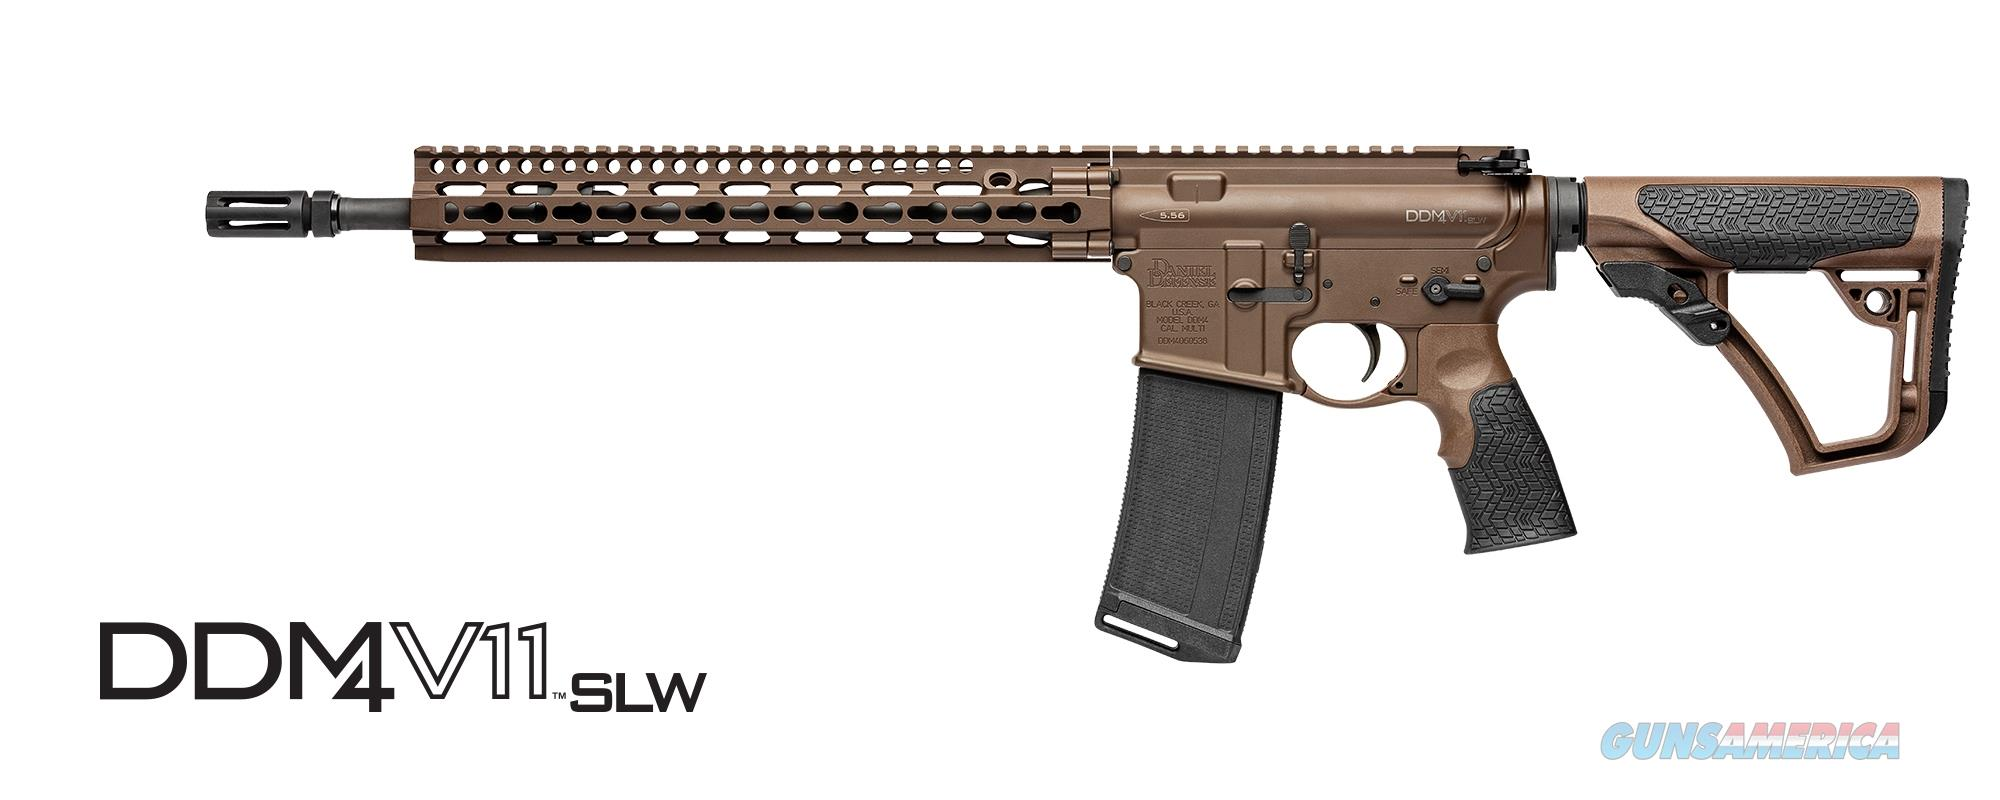 Daniel Defense DDM4V11 SLW Mil Spec+ 5.56mm 02-151-08188-047  Guns > Rifles > Daniel Defense > Complete Rifles